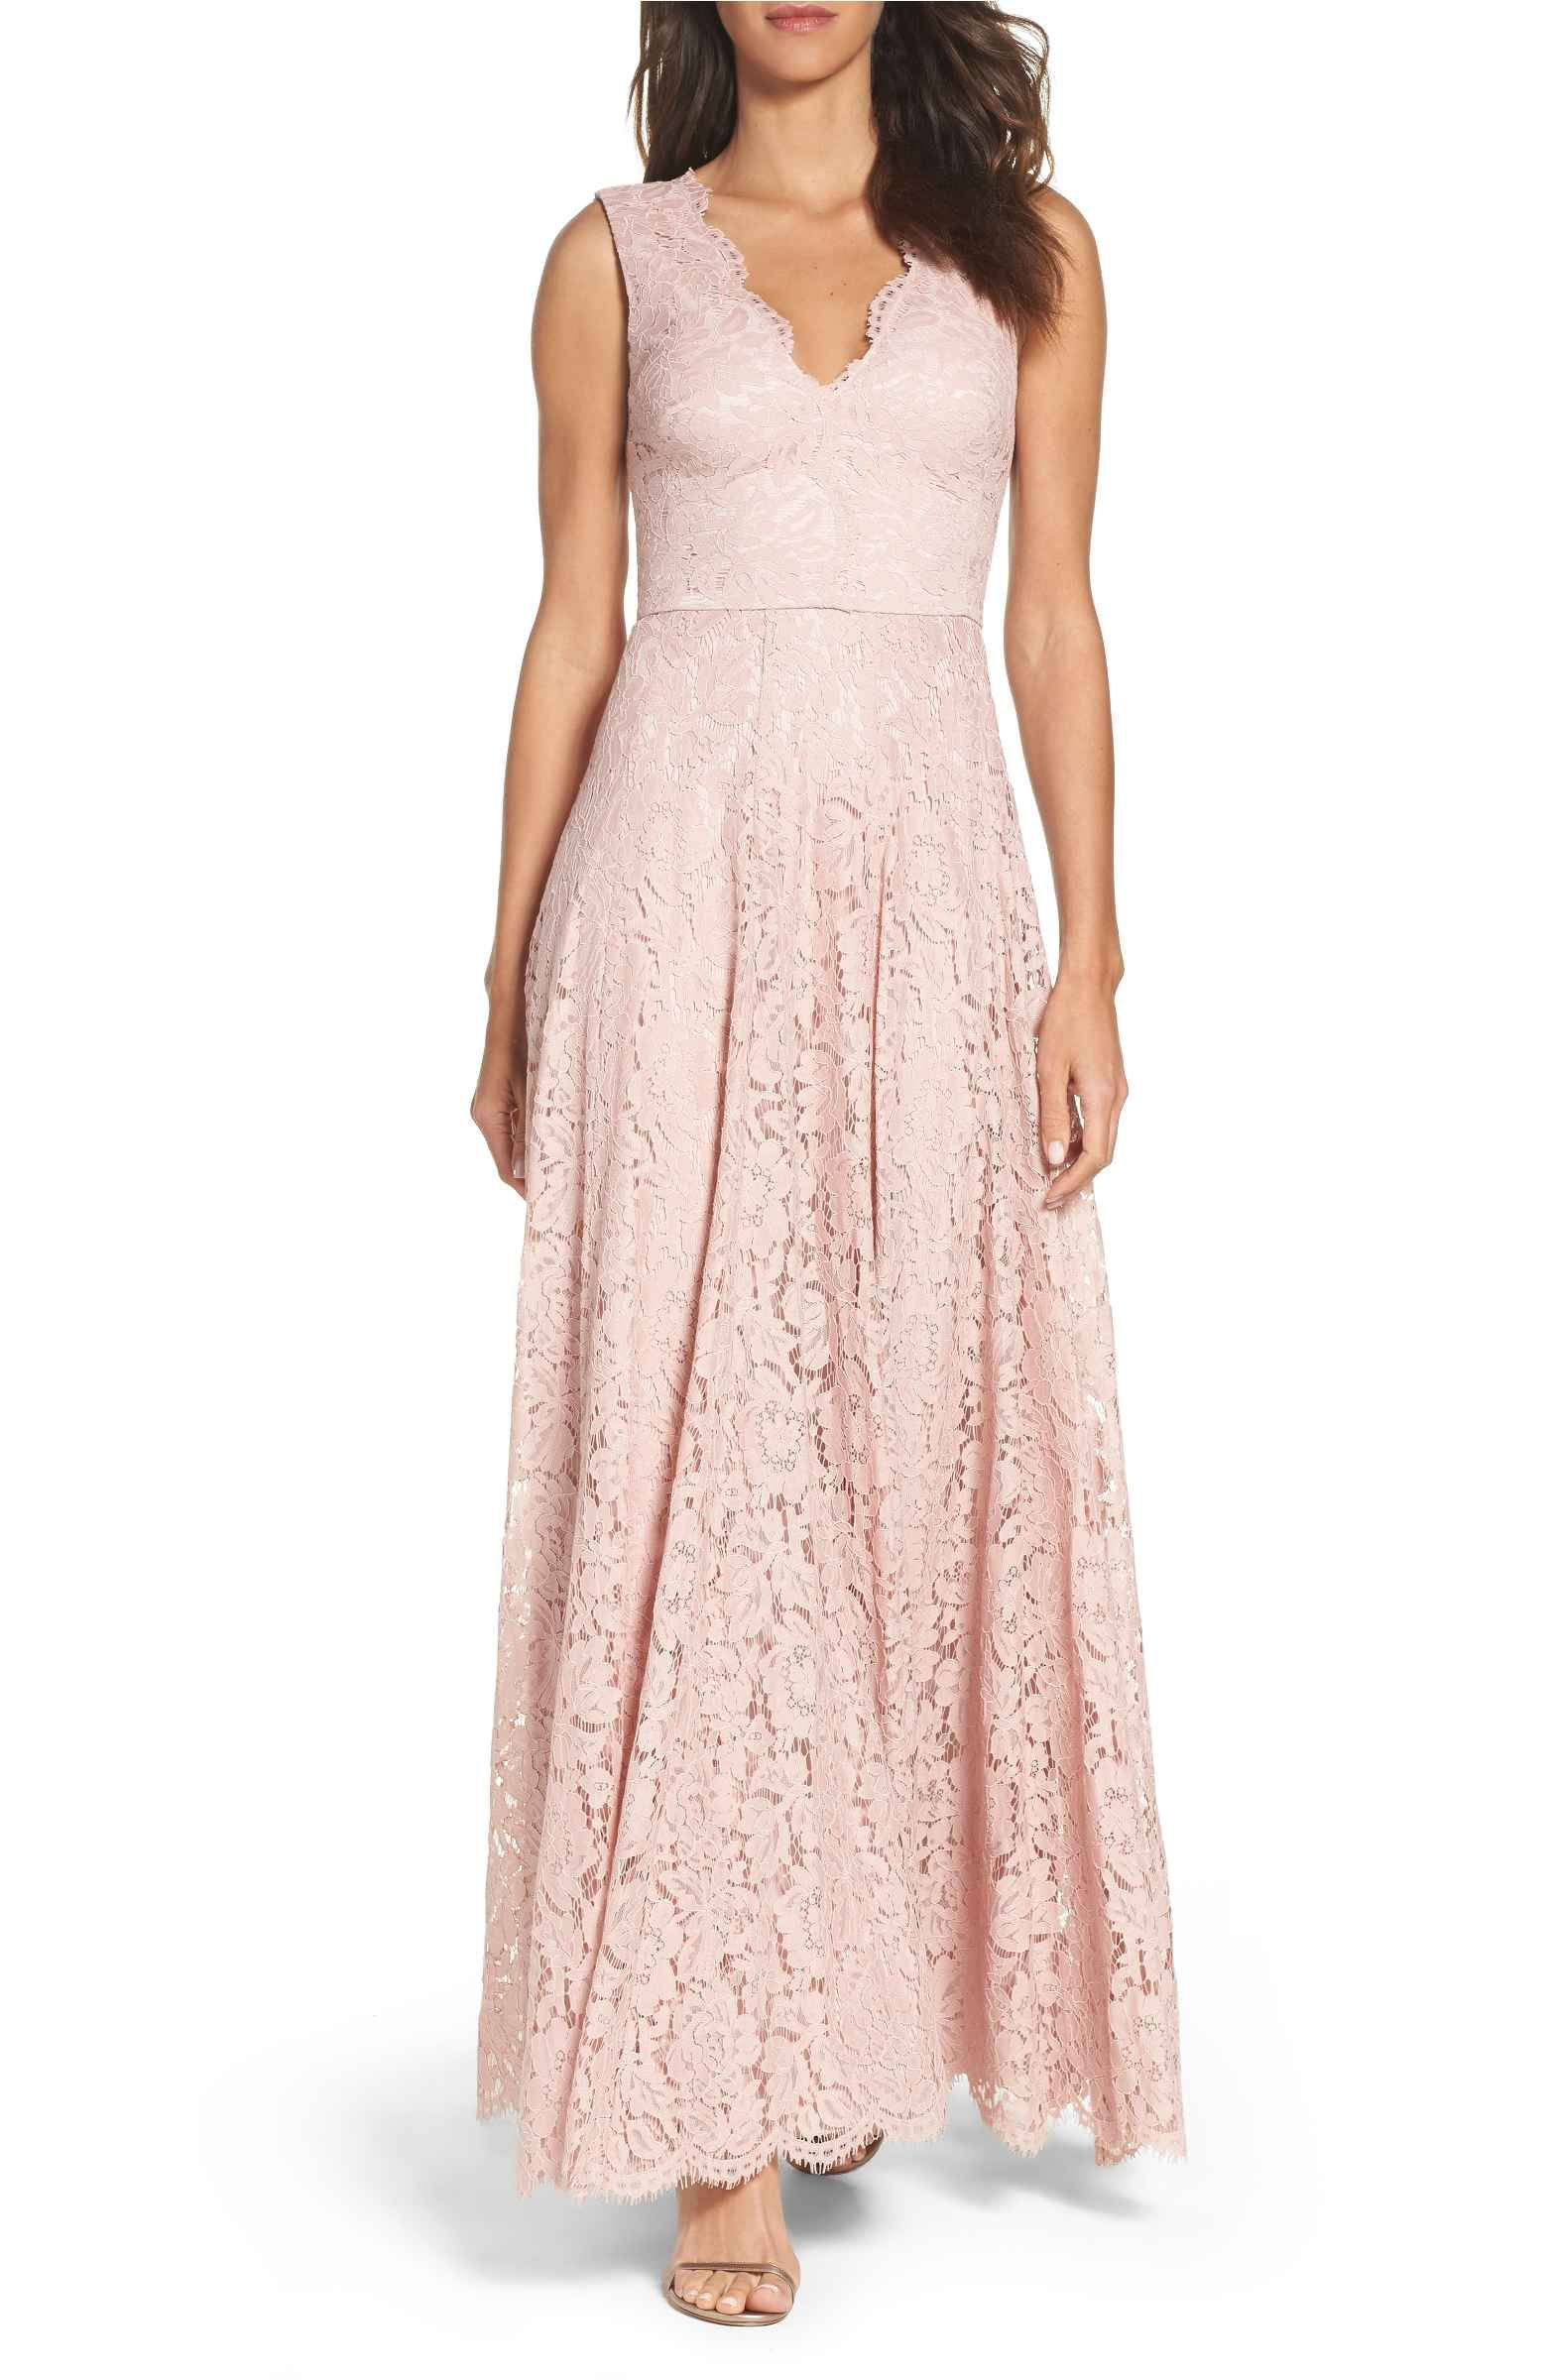 Main Image - Vera Wang Scalloped Lace Gown | Parties | Pinterest